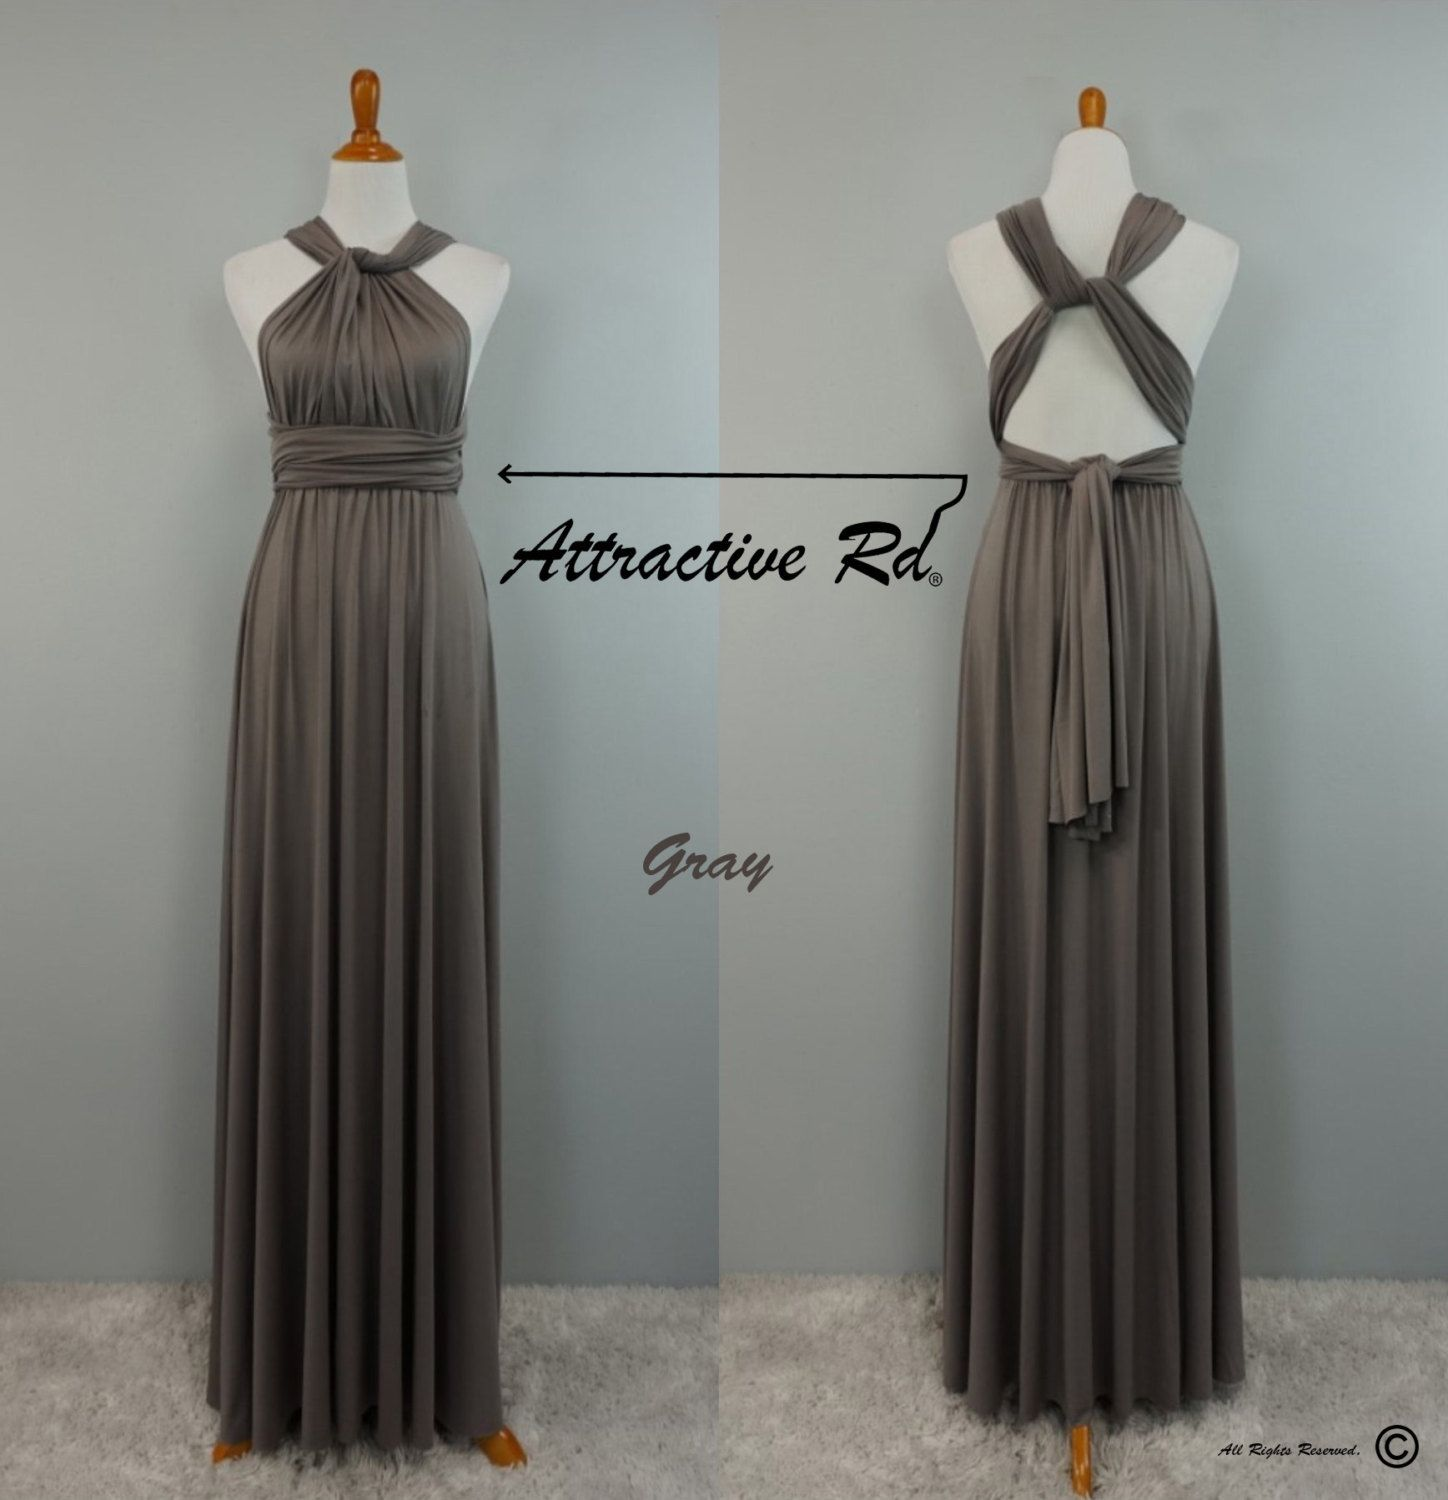 Gray dress dresses plus size dresses plus size bridesmaid gray dressbridesmaid dressinfinity dressconvertible dressparty dressmulti way dresscocktail dressevening dressprom dresslong dress ombrellifo Image collections